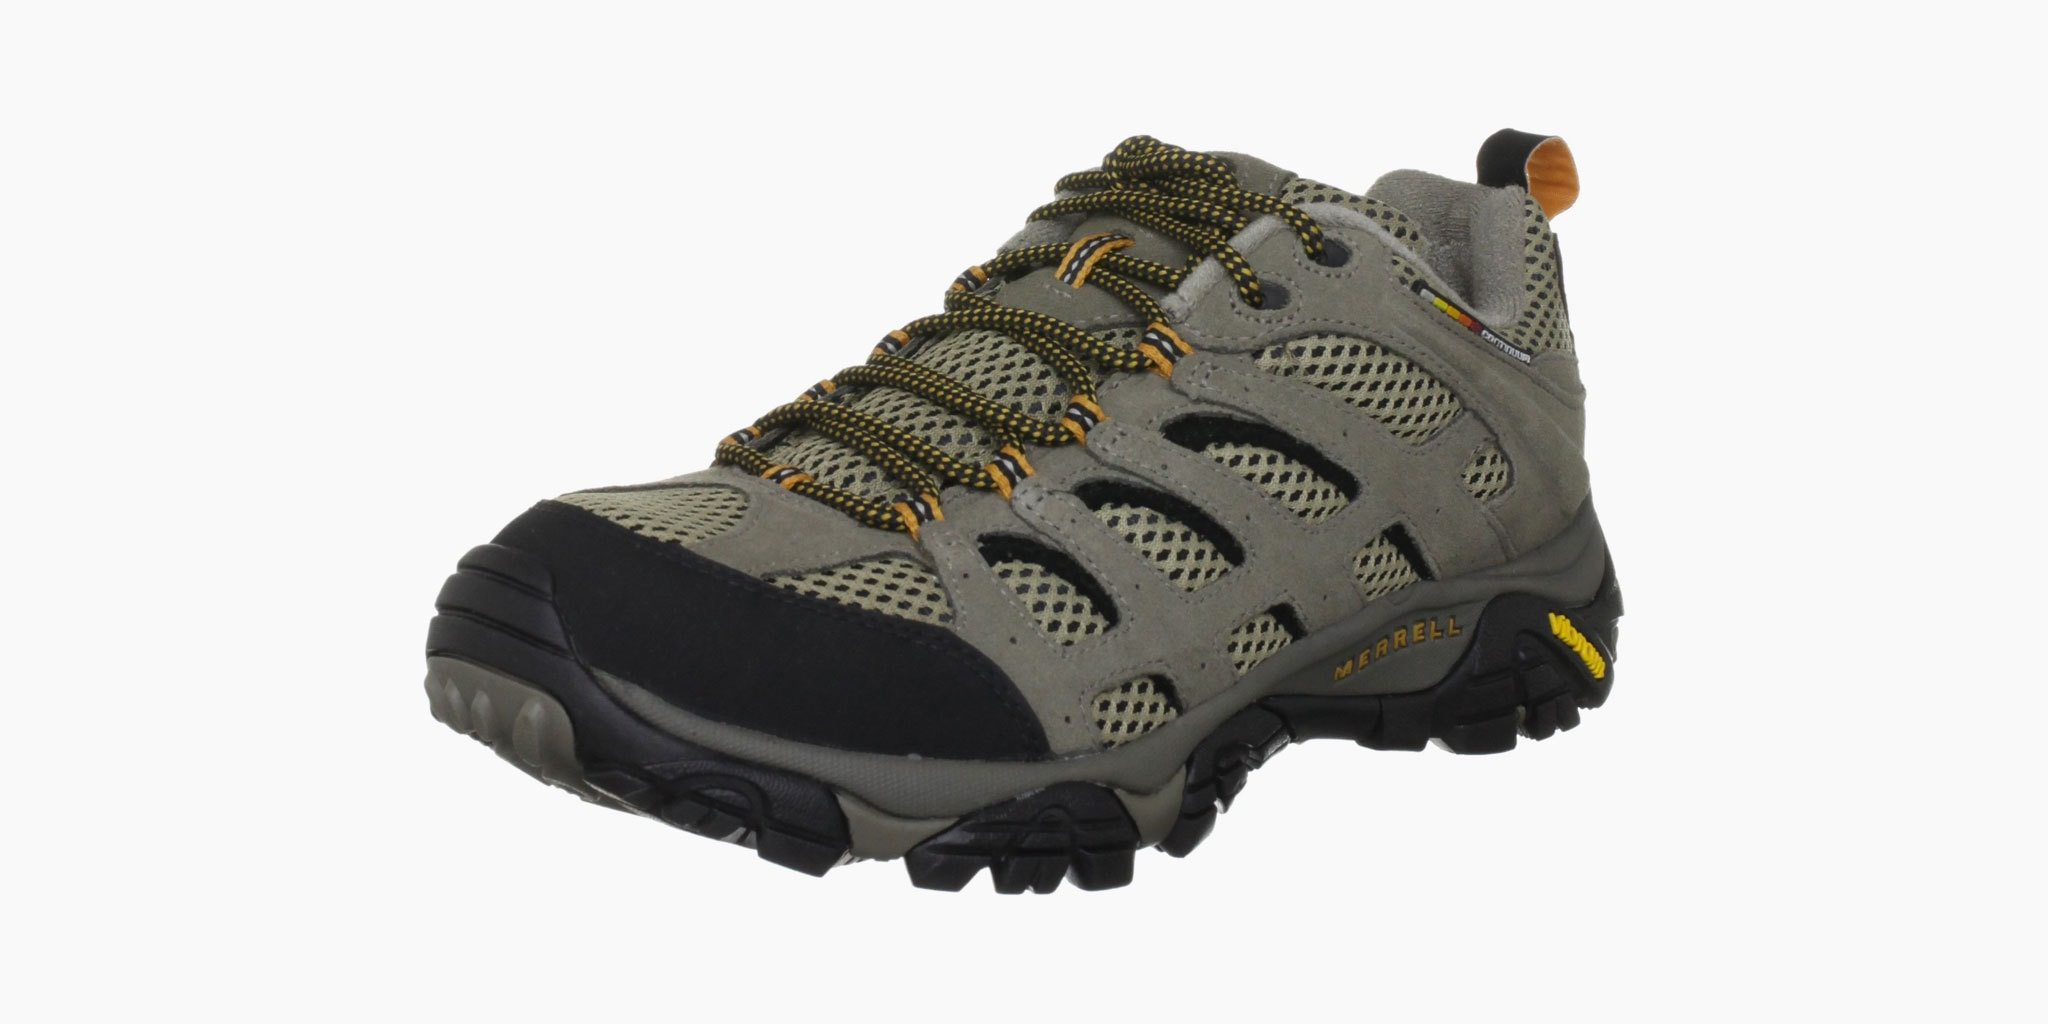 hot sale online 4928e e1335 The Best Shoes for Disc Golf in 2019: Review by MostCraft